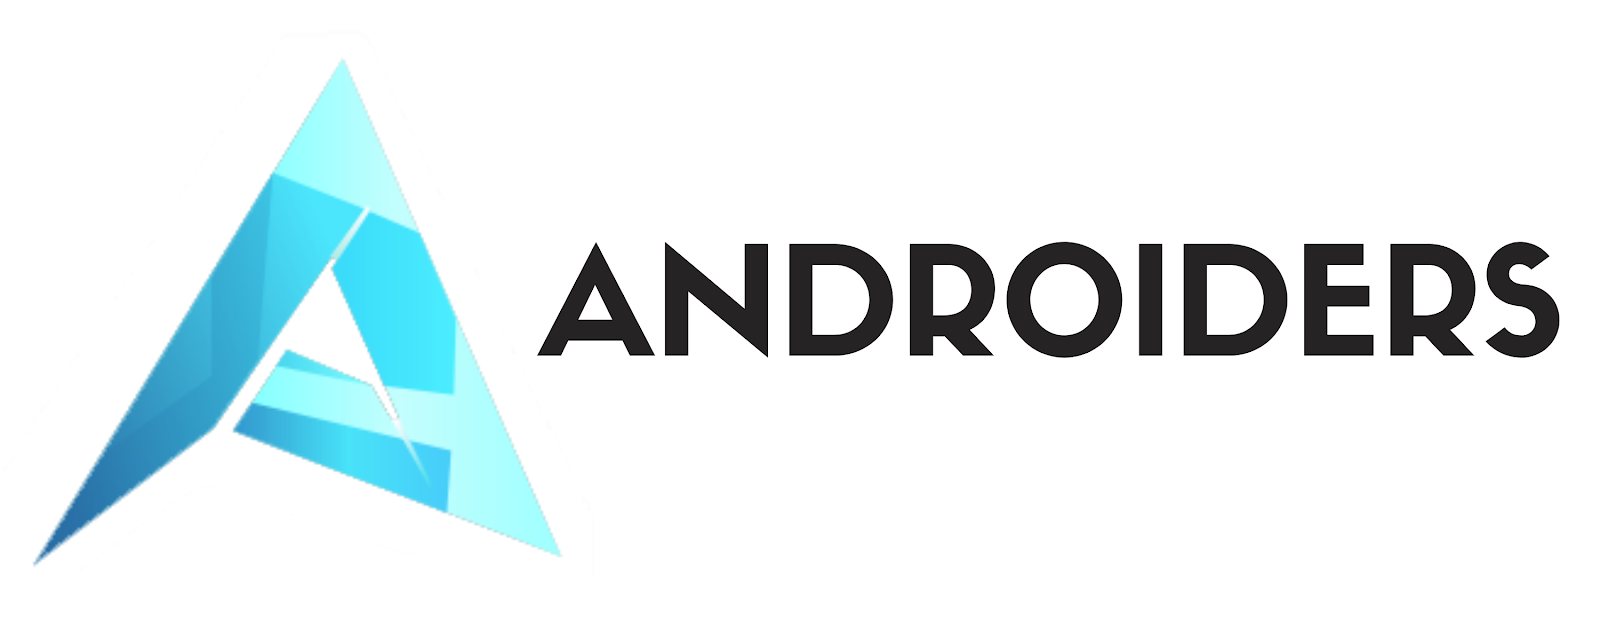 Androiders